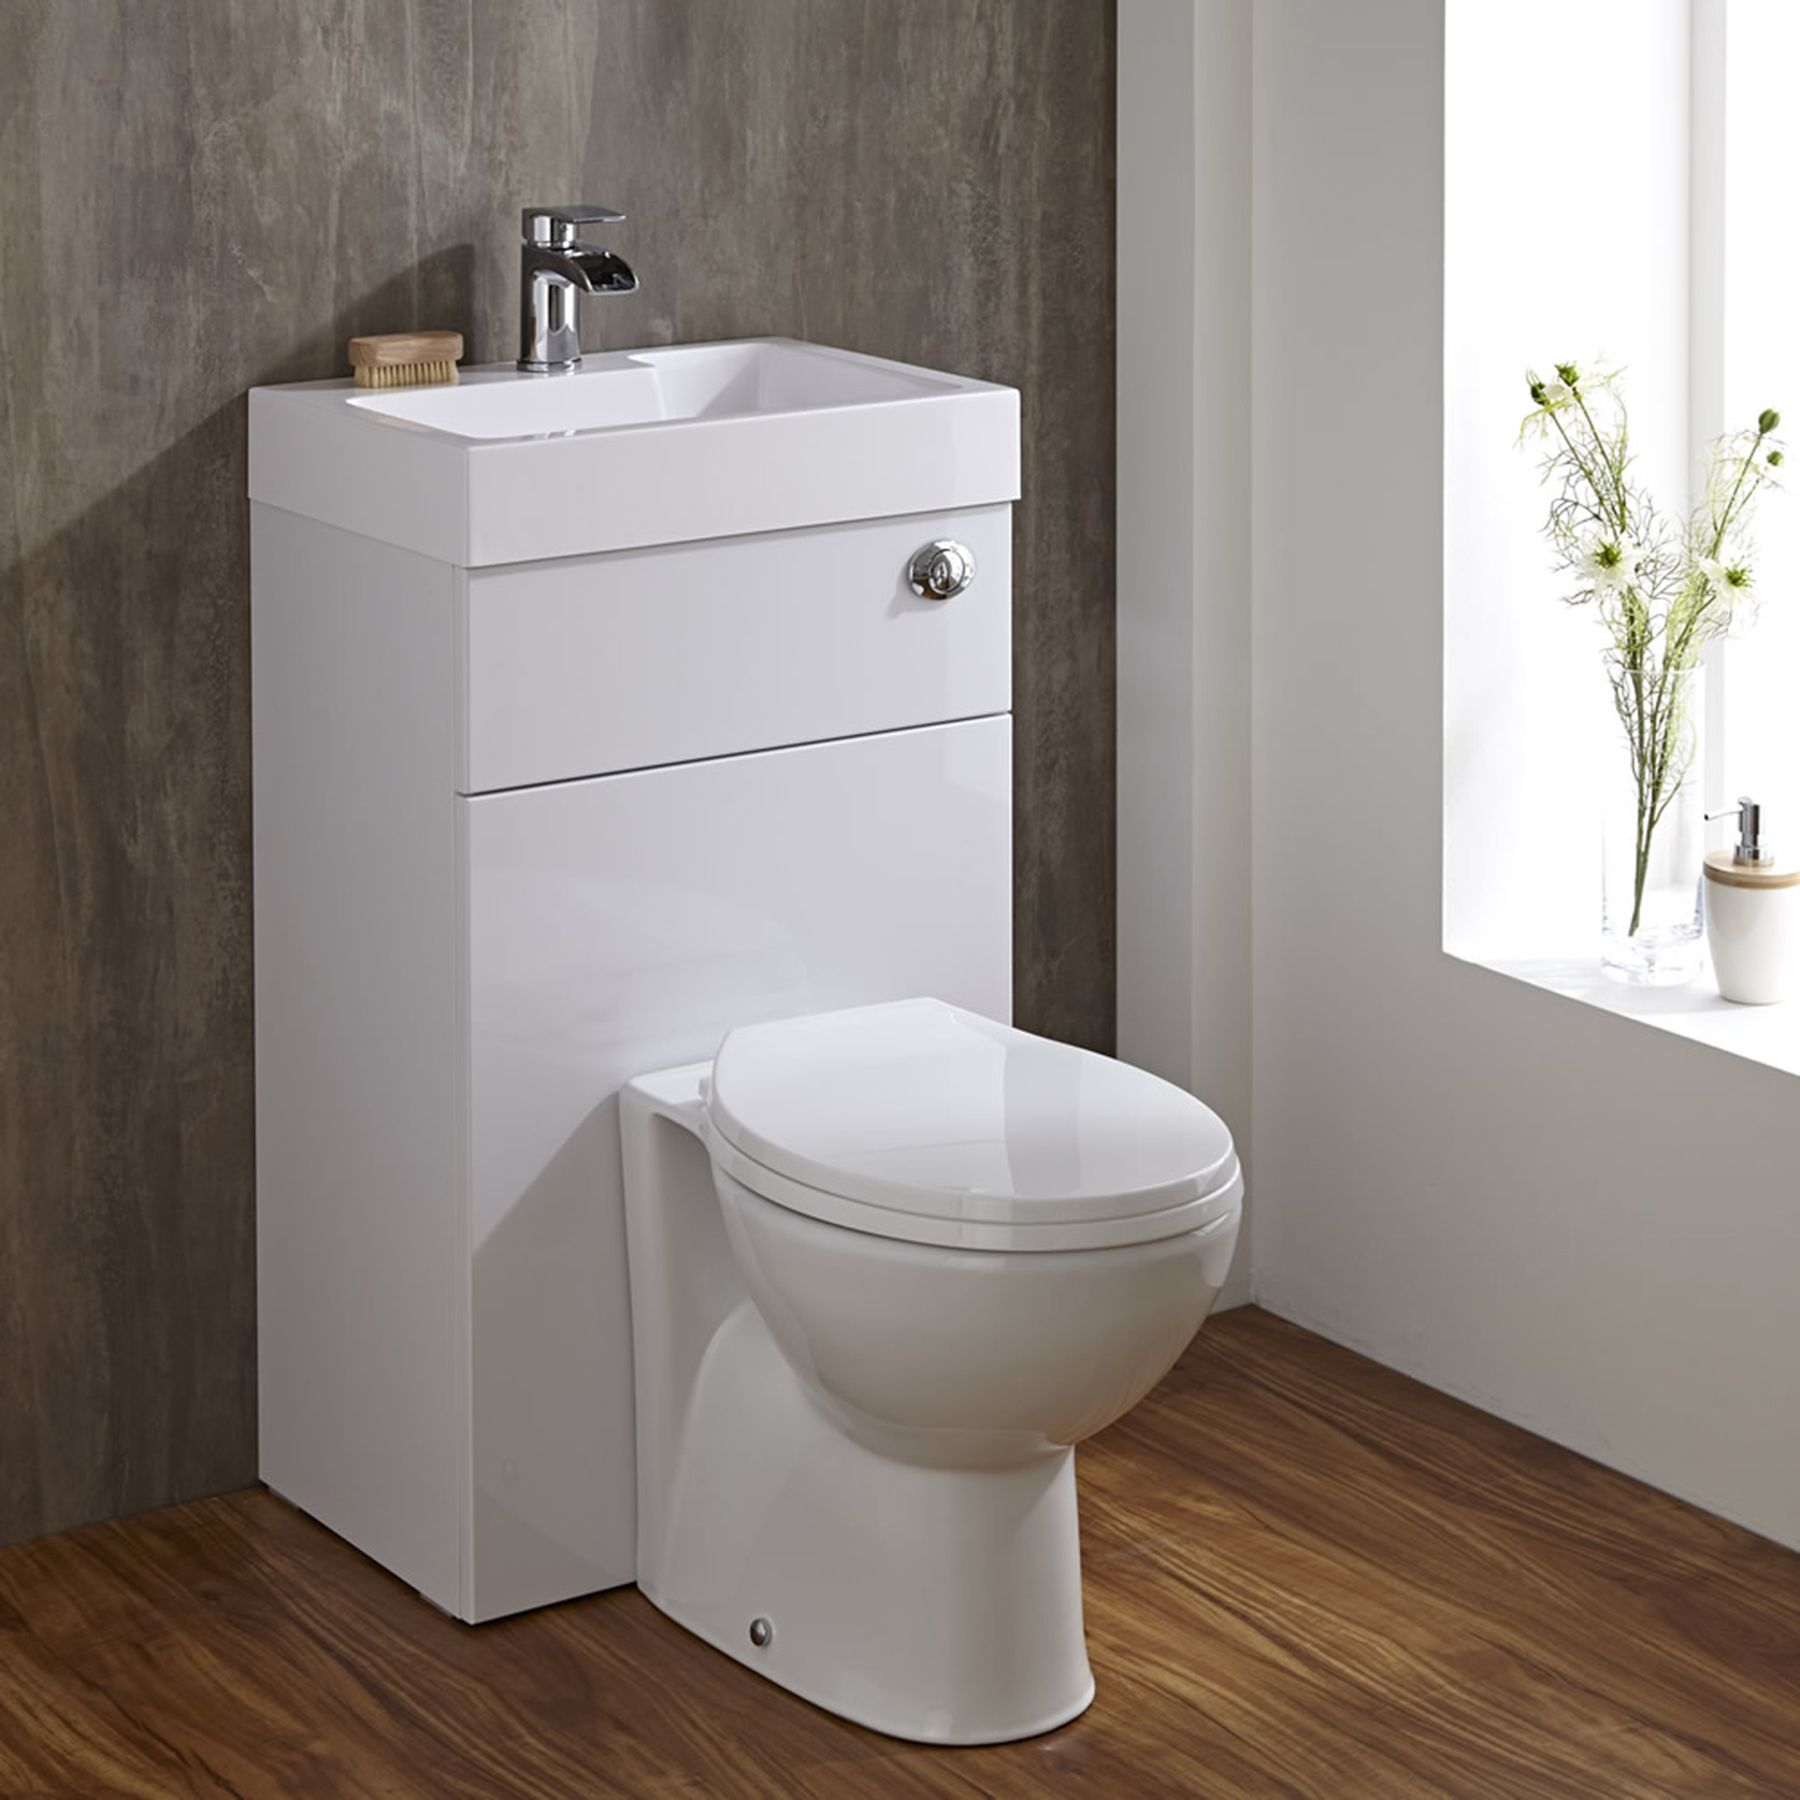 Madrid Gloss White Basin Unit With Brisbane Back To Wall Toilet Pack Toilet And Basin Unit Back To Wall Toilets Modern Toilet